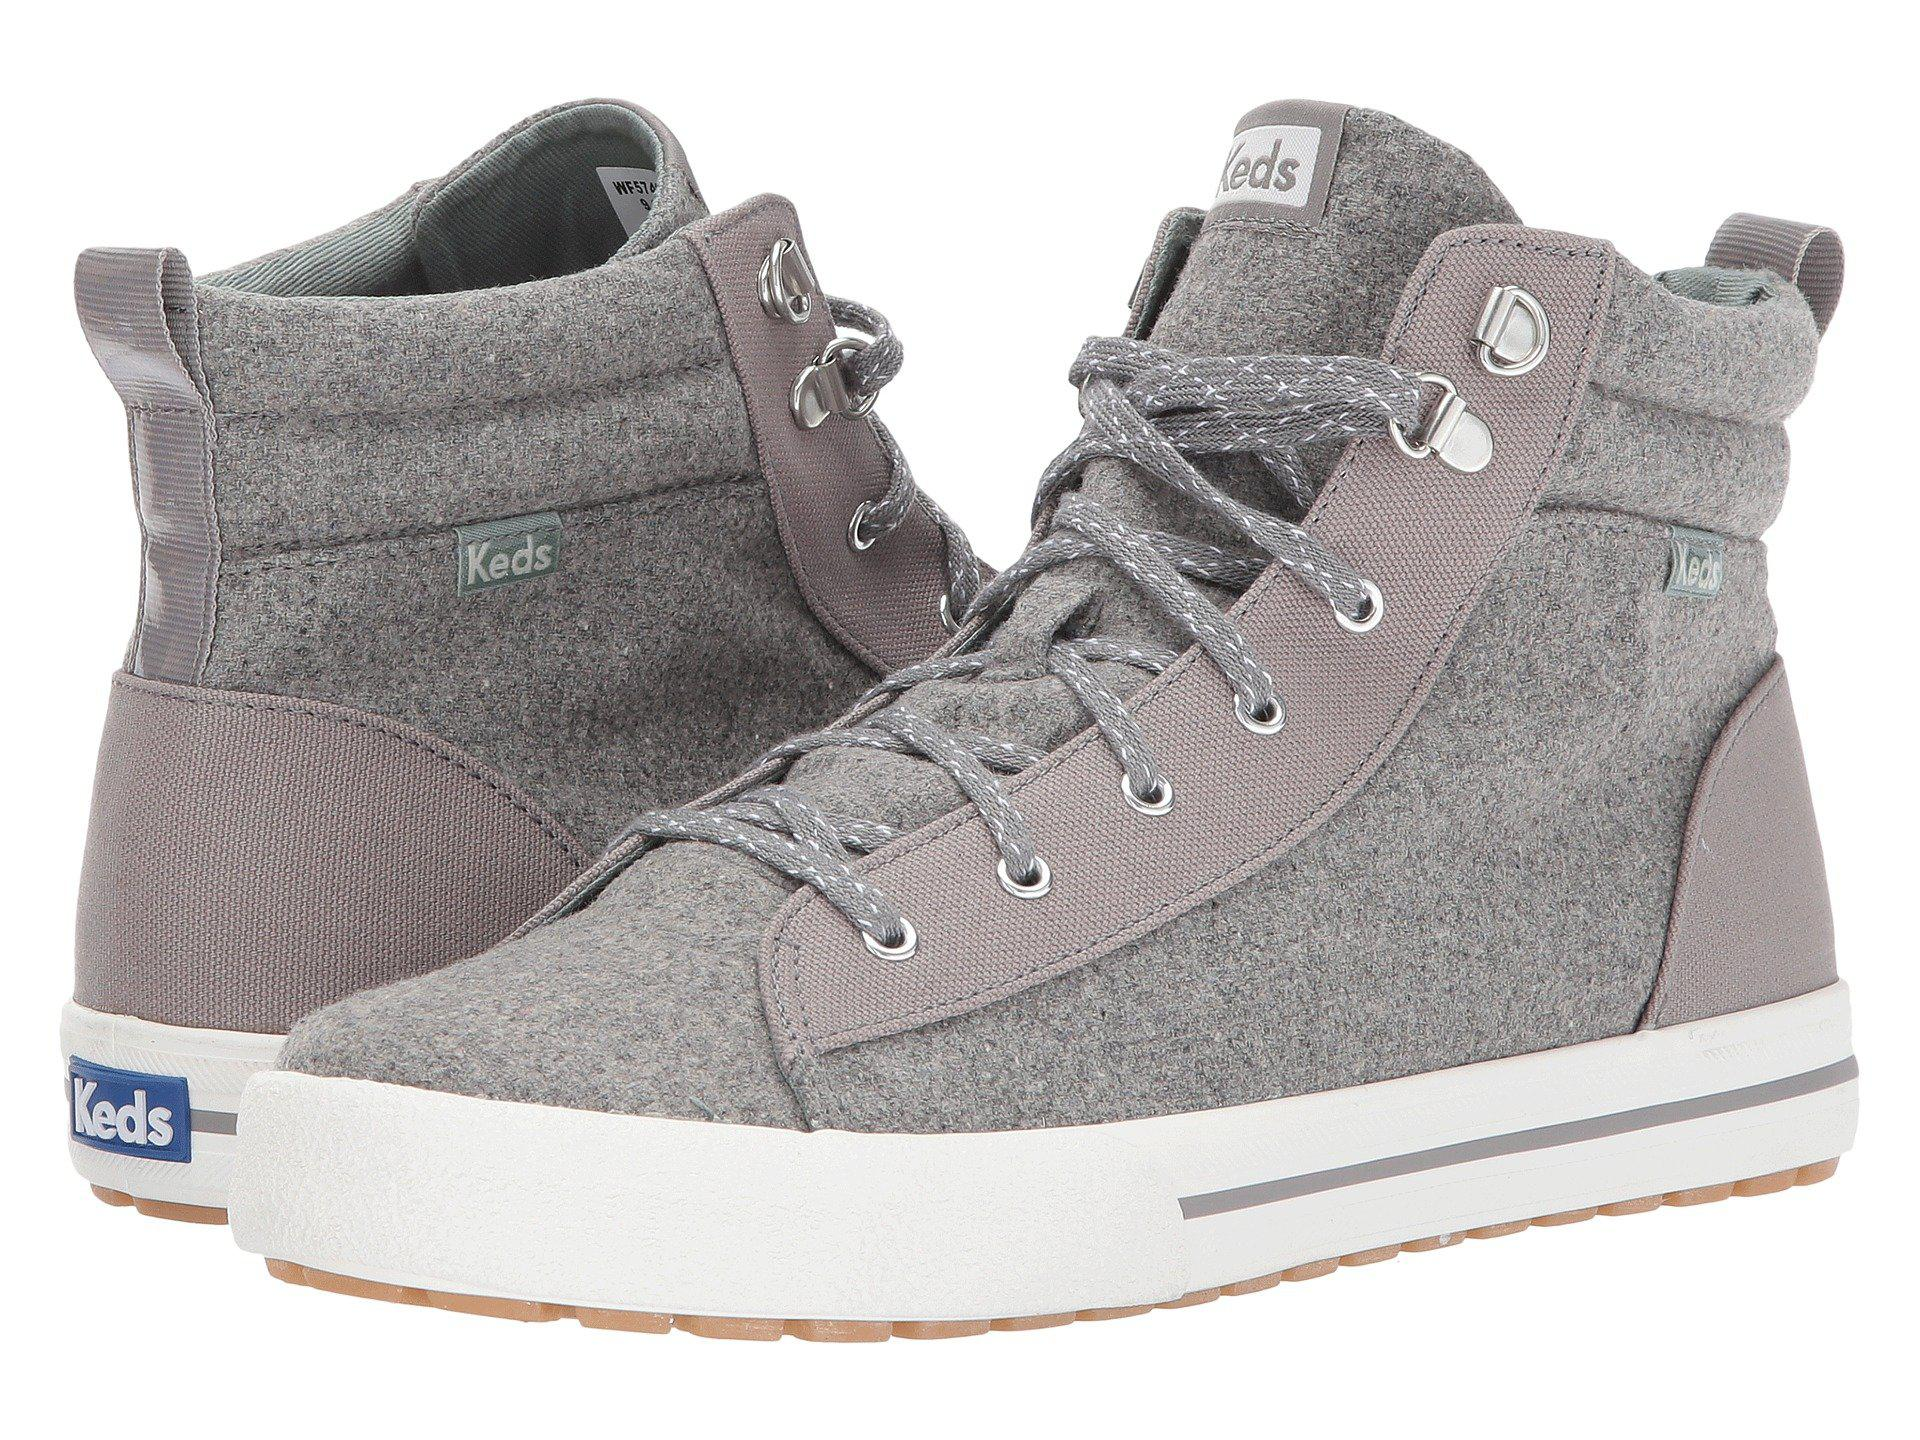 f51cf29194ded Lyst - Keds Topkick Wool in Gray for Men - Save 46%